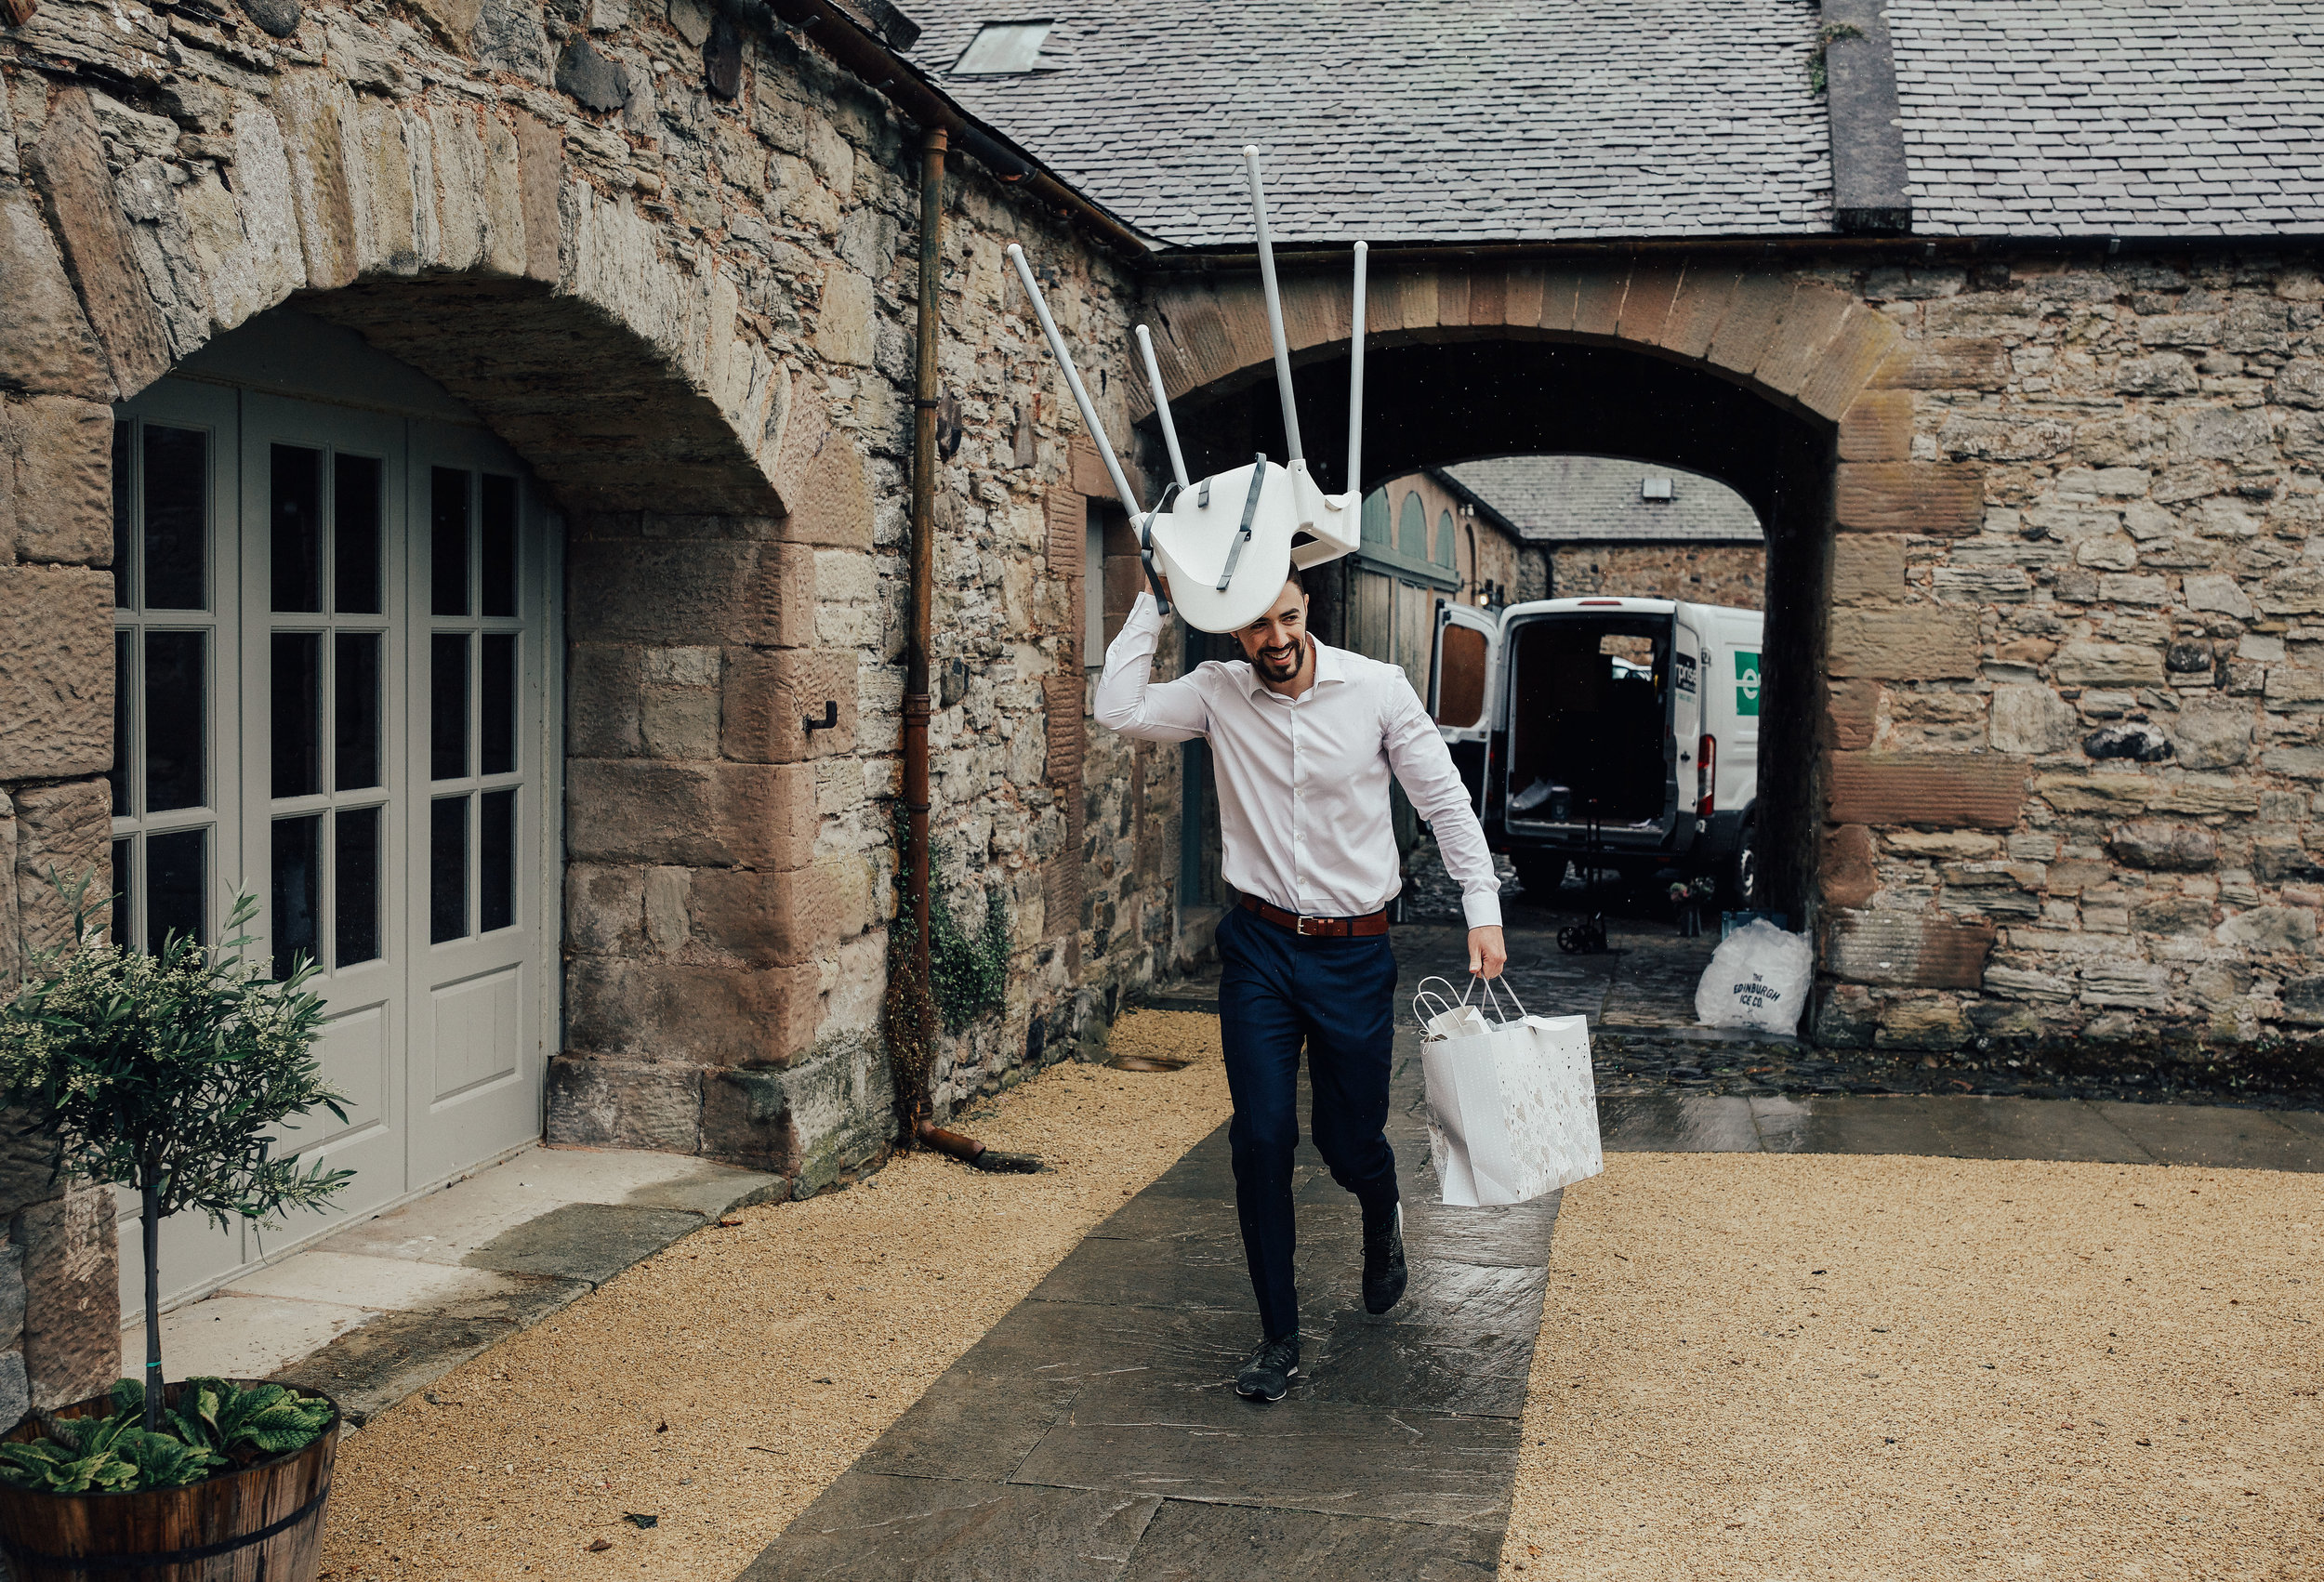 PJ_PHILLIPS_PHOTOGRAPHY_EDINBURGH_WEDDERBURN_BARNS_WEDDING_EDINBURGH_WEDDING_PHOTOGRAPHER_19.jpg